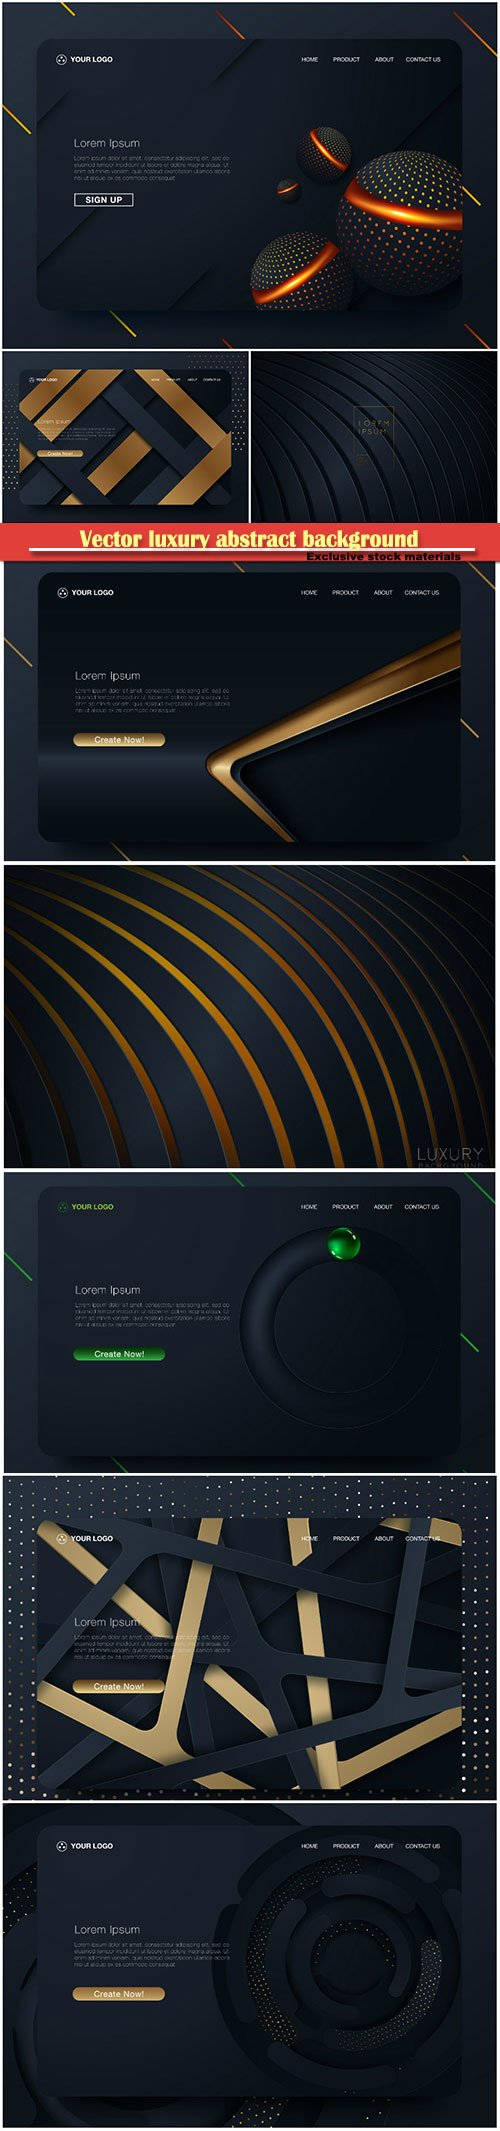 Vector luxury abstract background